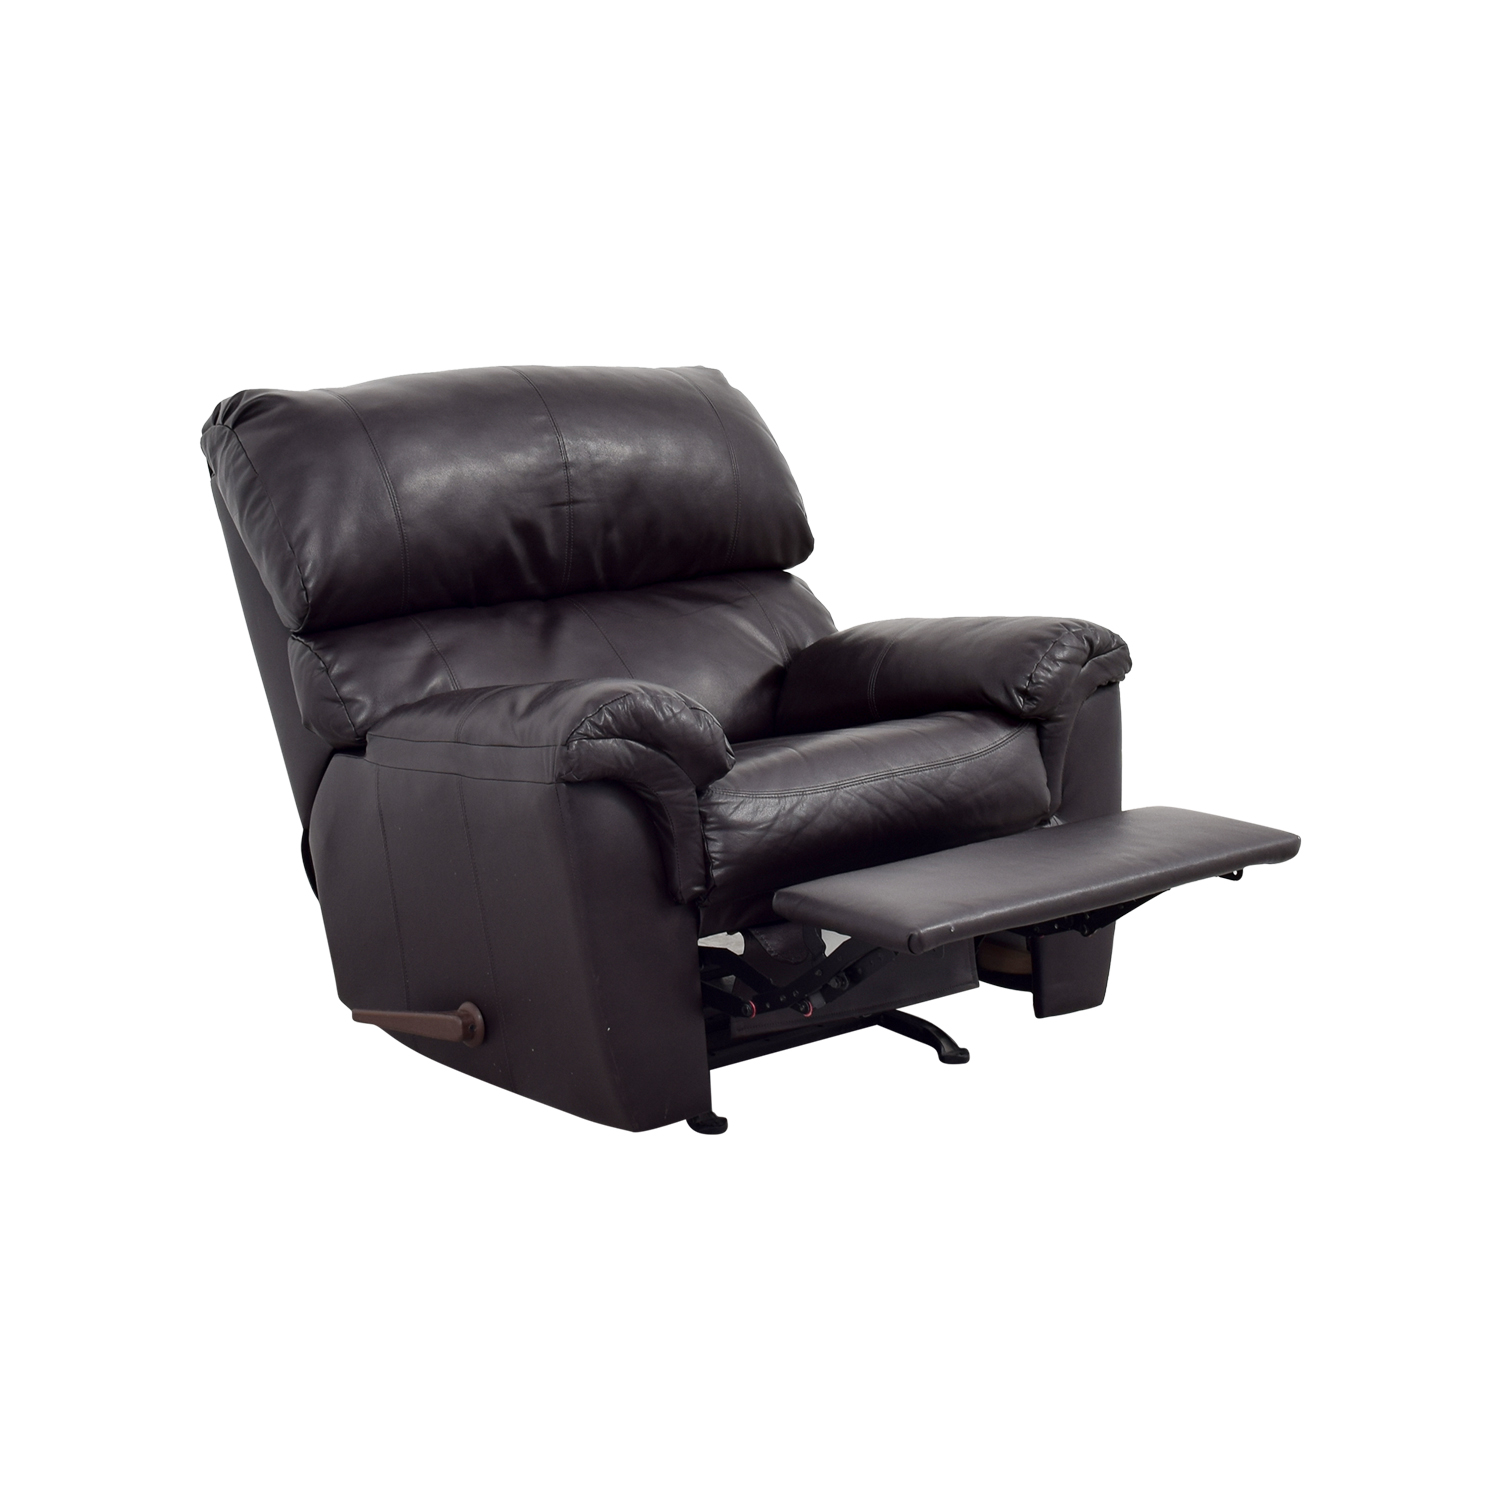 Cheap Recliner Chair 90 Off Bob 39s Discount Furniture Bob 39s Discount